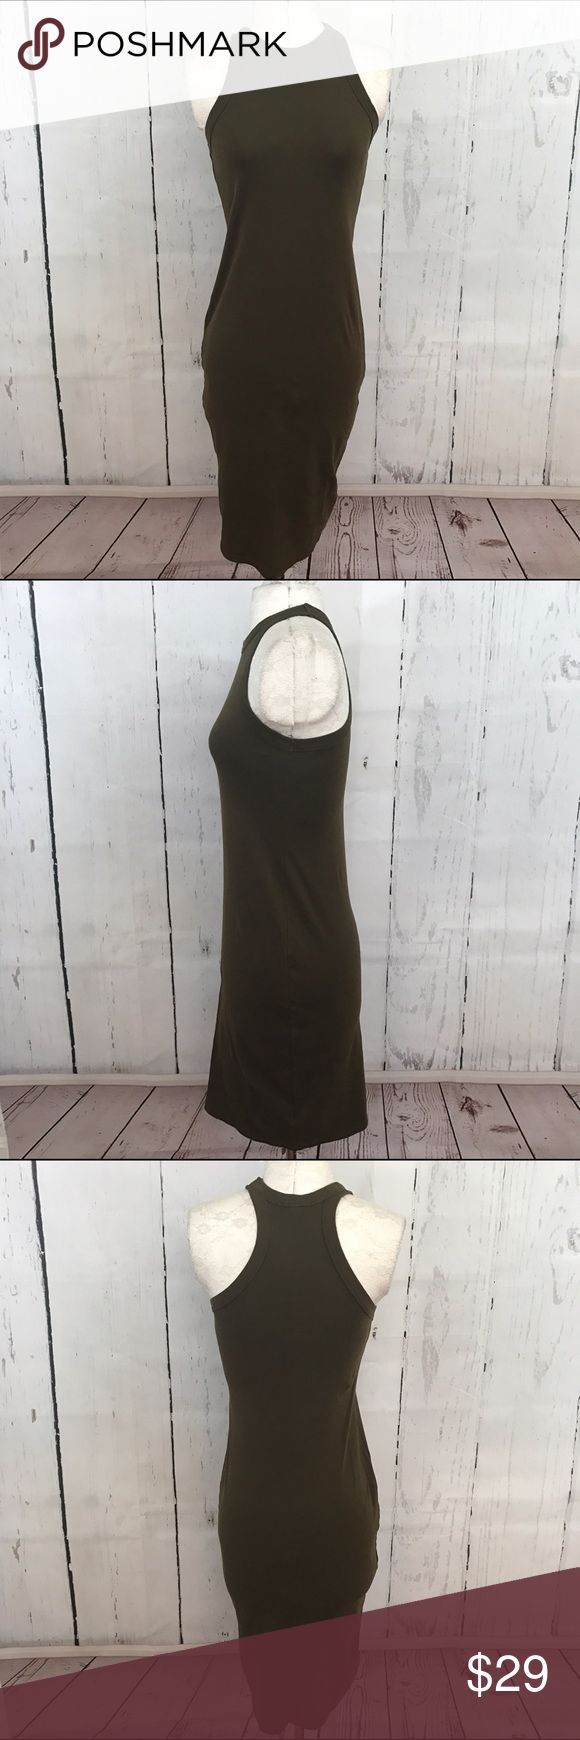 """🖤🖤 HIGH NECK MIDI DRESS B33 Condition: Euc Approximate measurements (laying flat): 13.5"""" bust 38"""" length  Item location: bin 33   **bundles save 10%** no trades/no modeling/no asking for lowest Topshop Dresses Midi"""